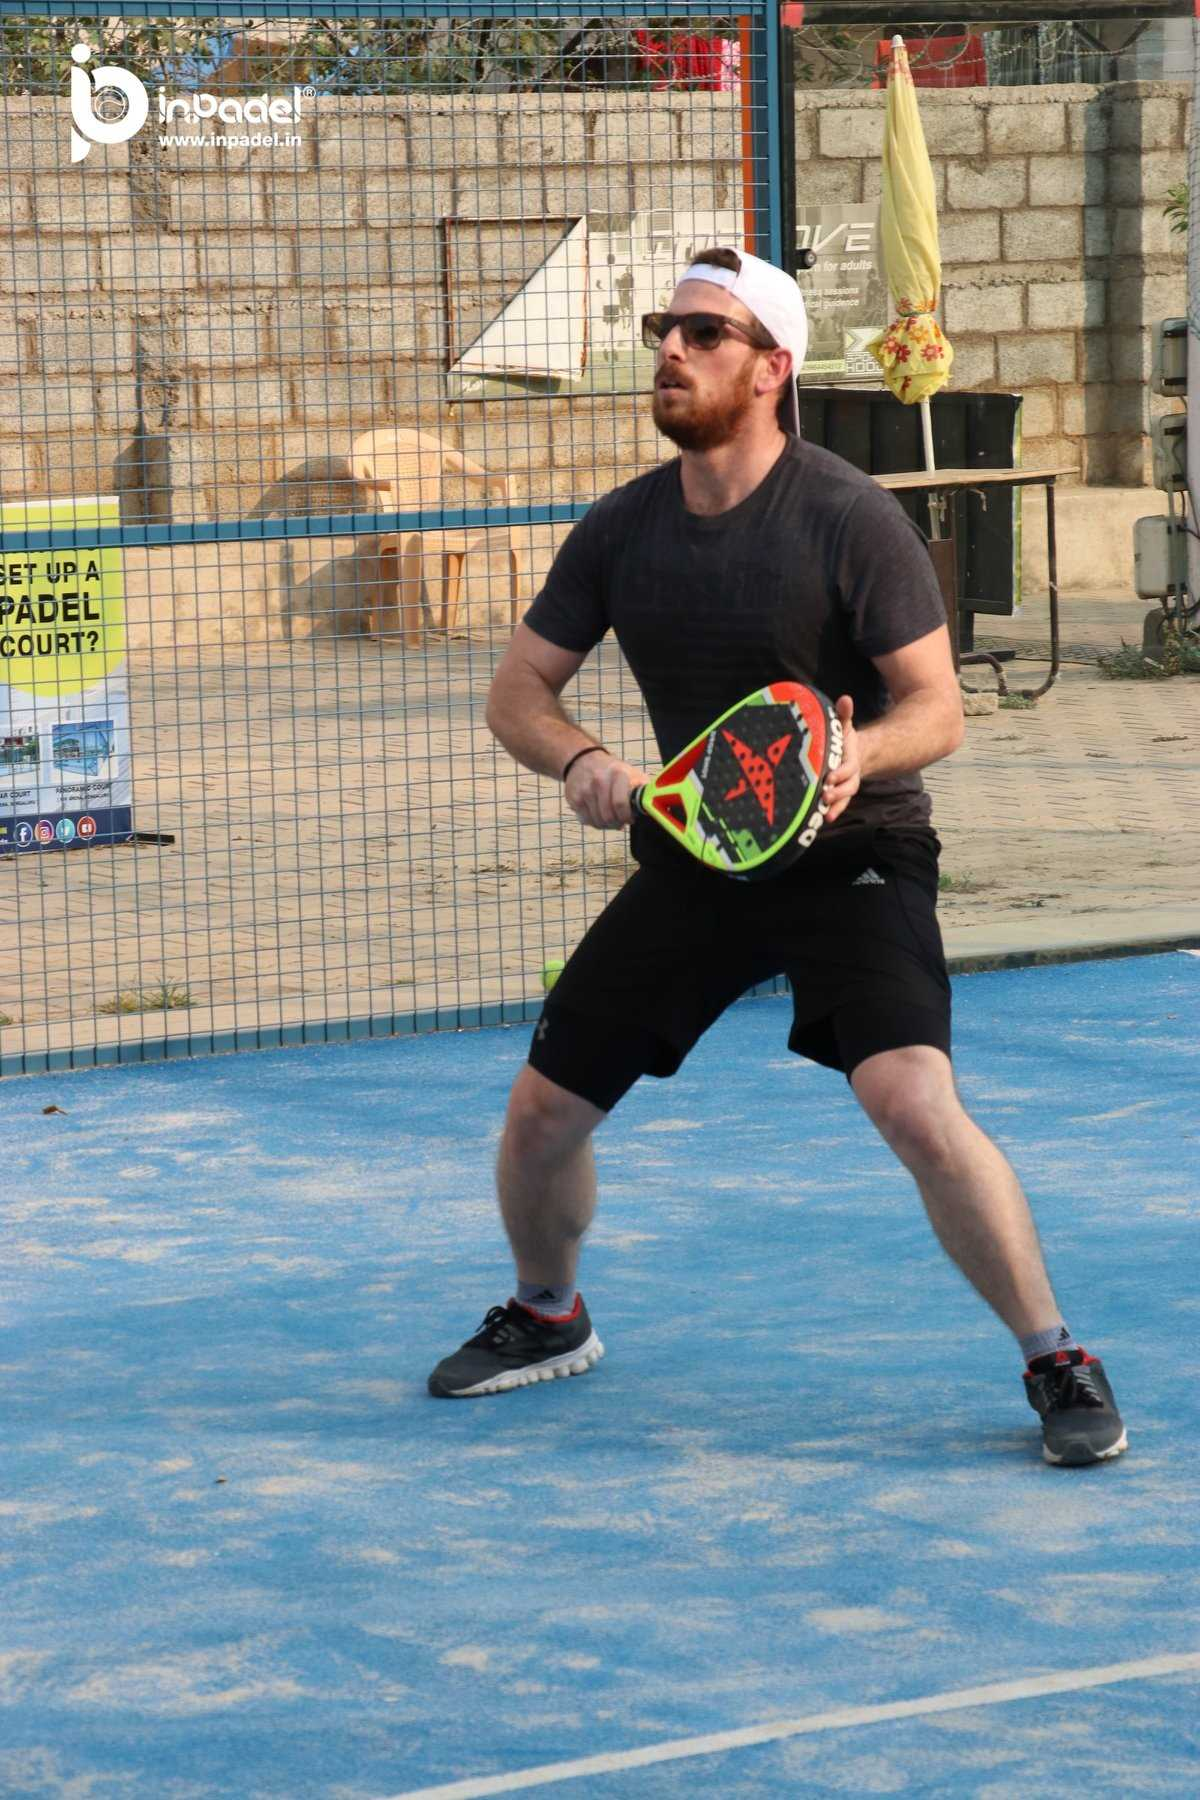 InPadel 1Yr Celebration of Padel in INDIA - Padel - Padel India (83)